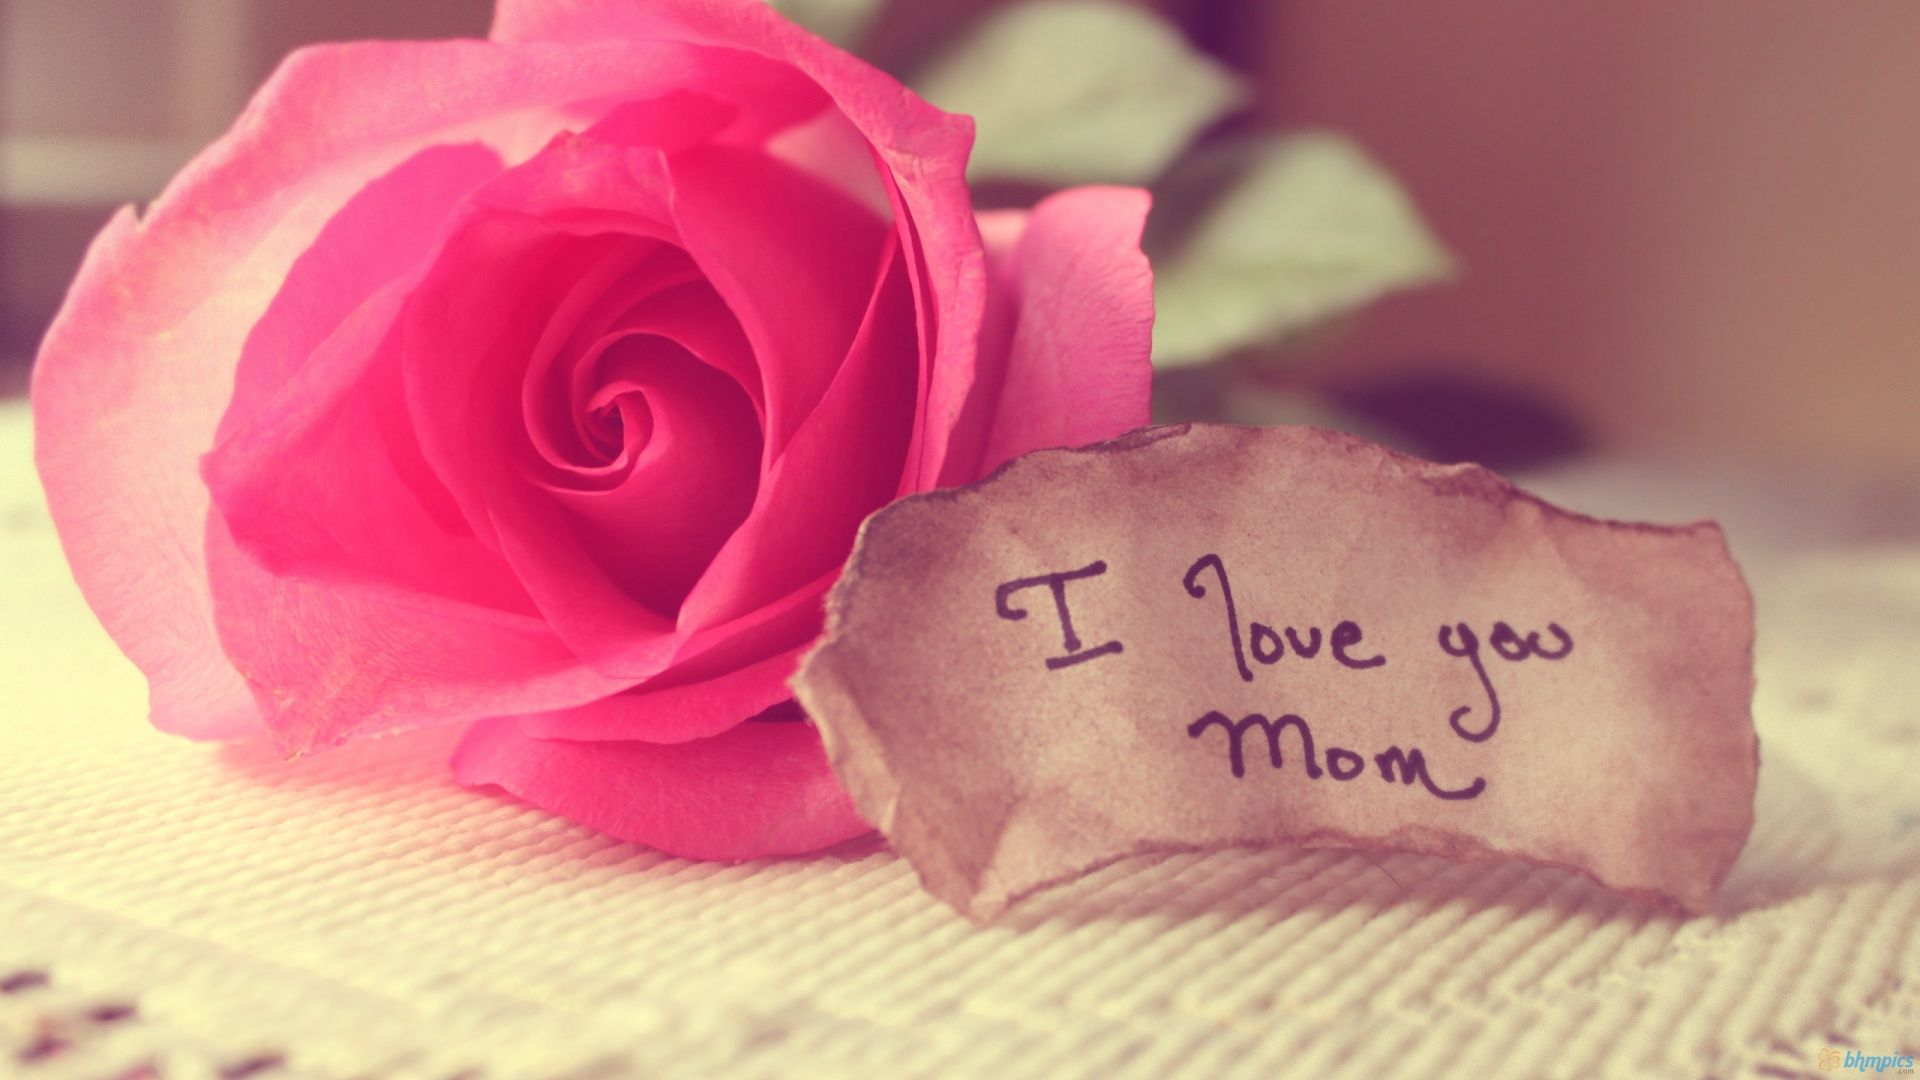 Quotes About A Mother's Love I Love My Mom Quotes For Facebook  Mother's Day I Love You Mom Hd